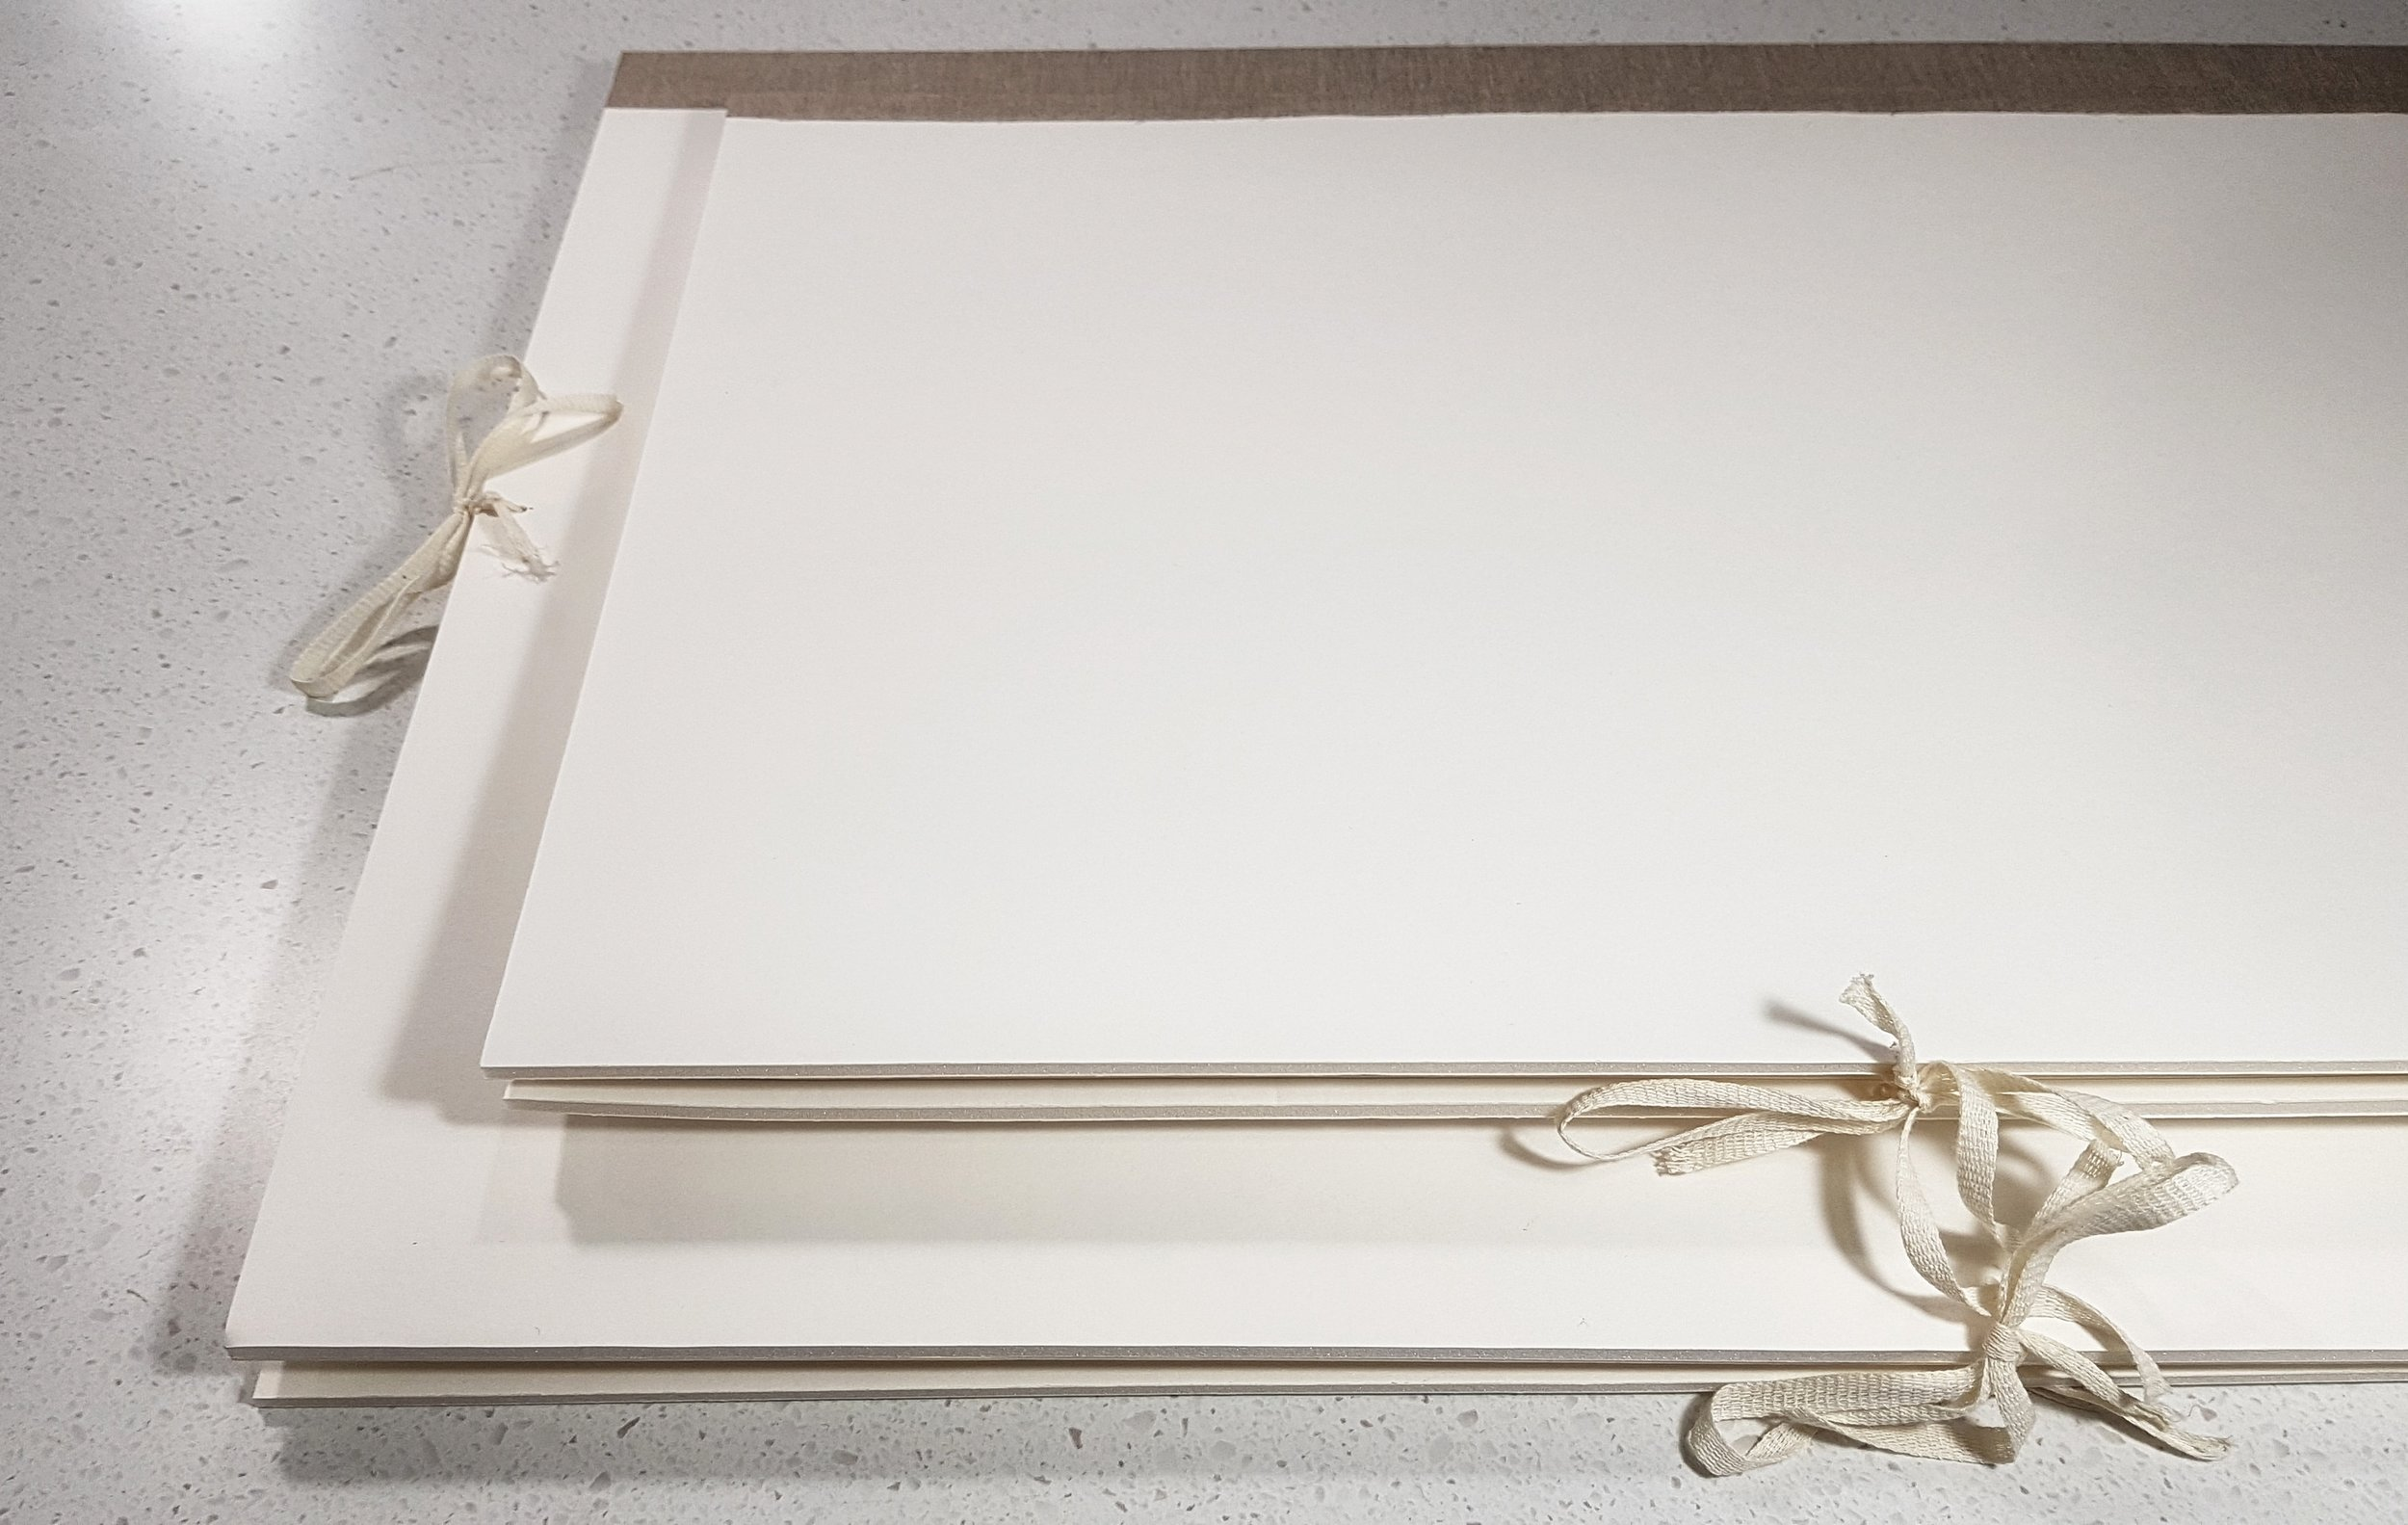 Custom acid-free storage folders, to protect paper artifacts in long-term storage.